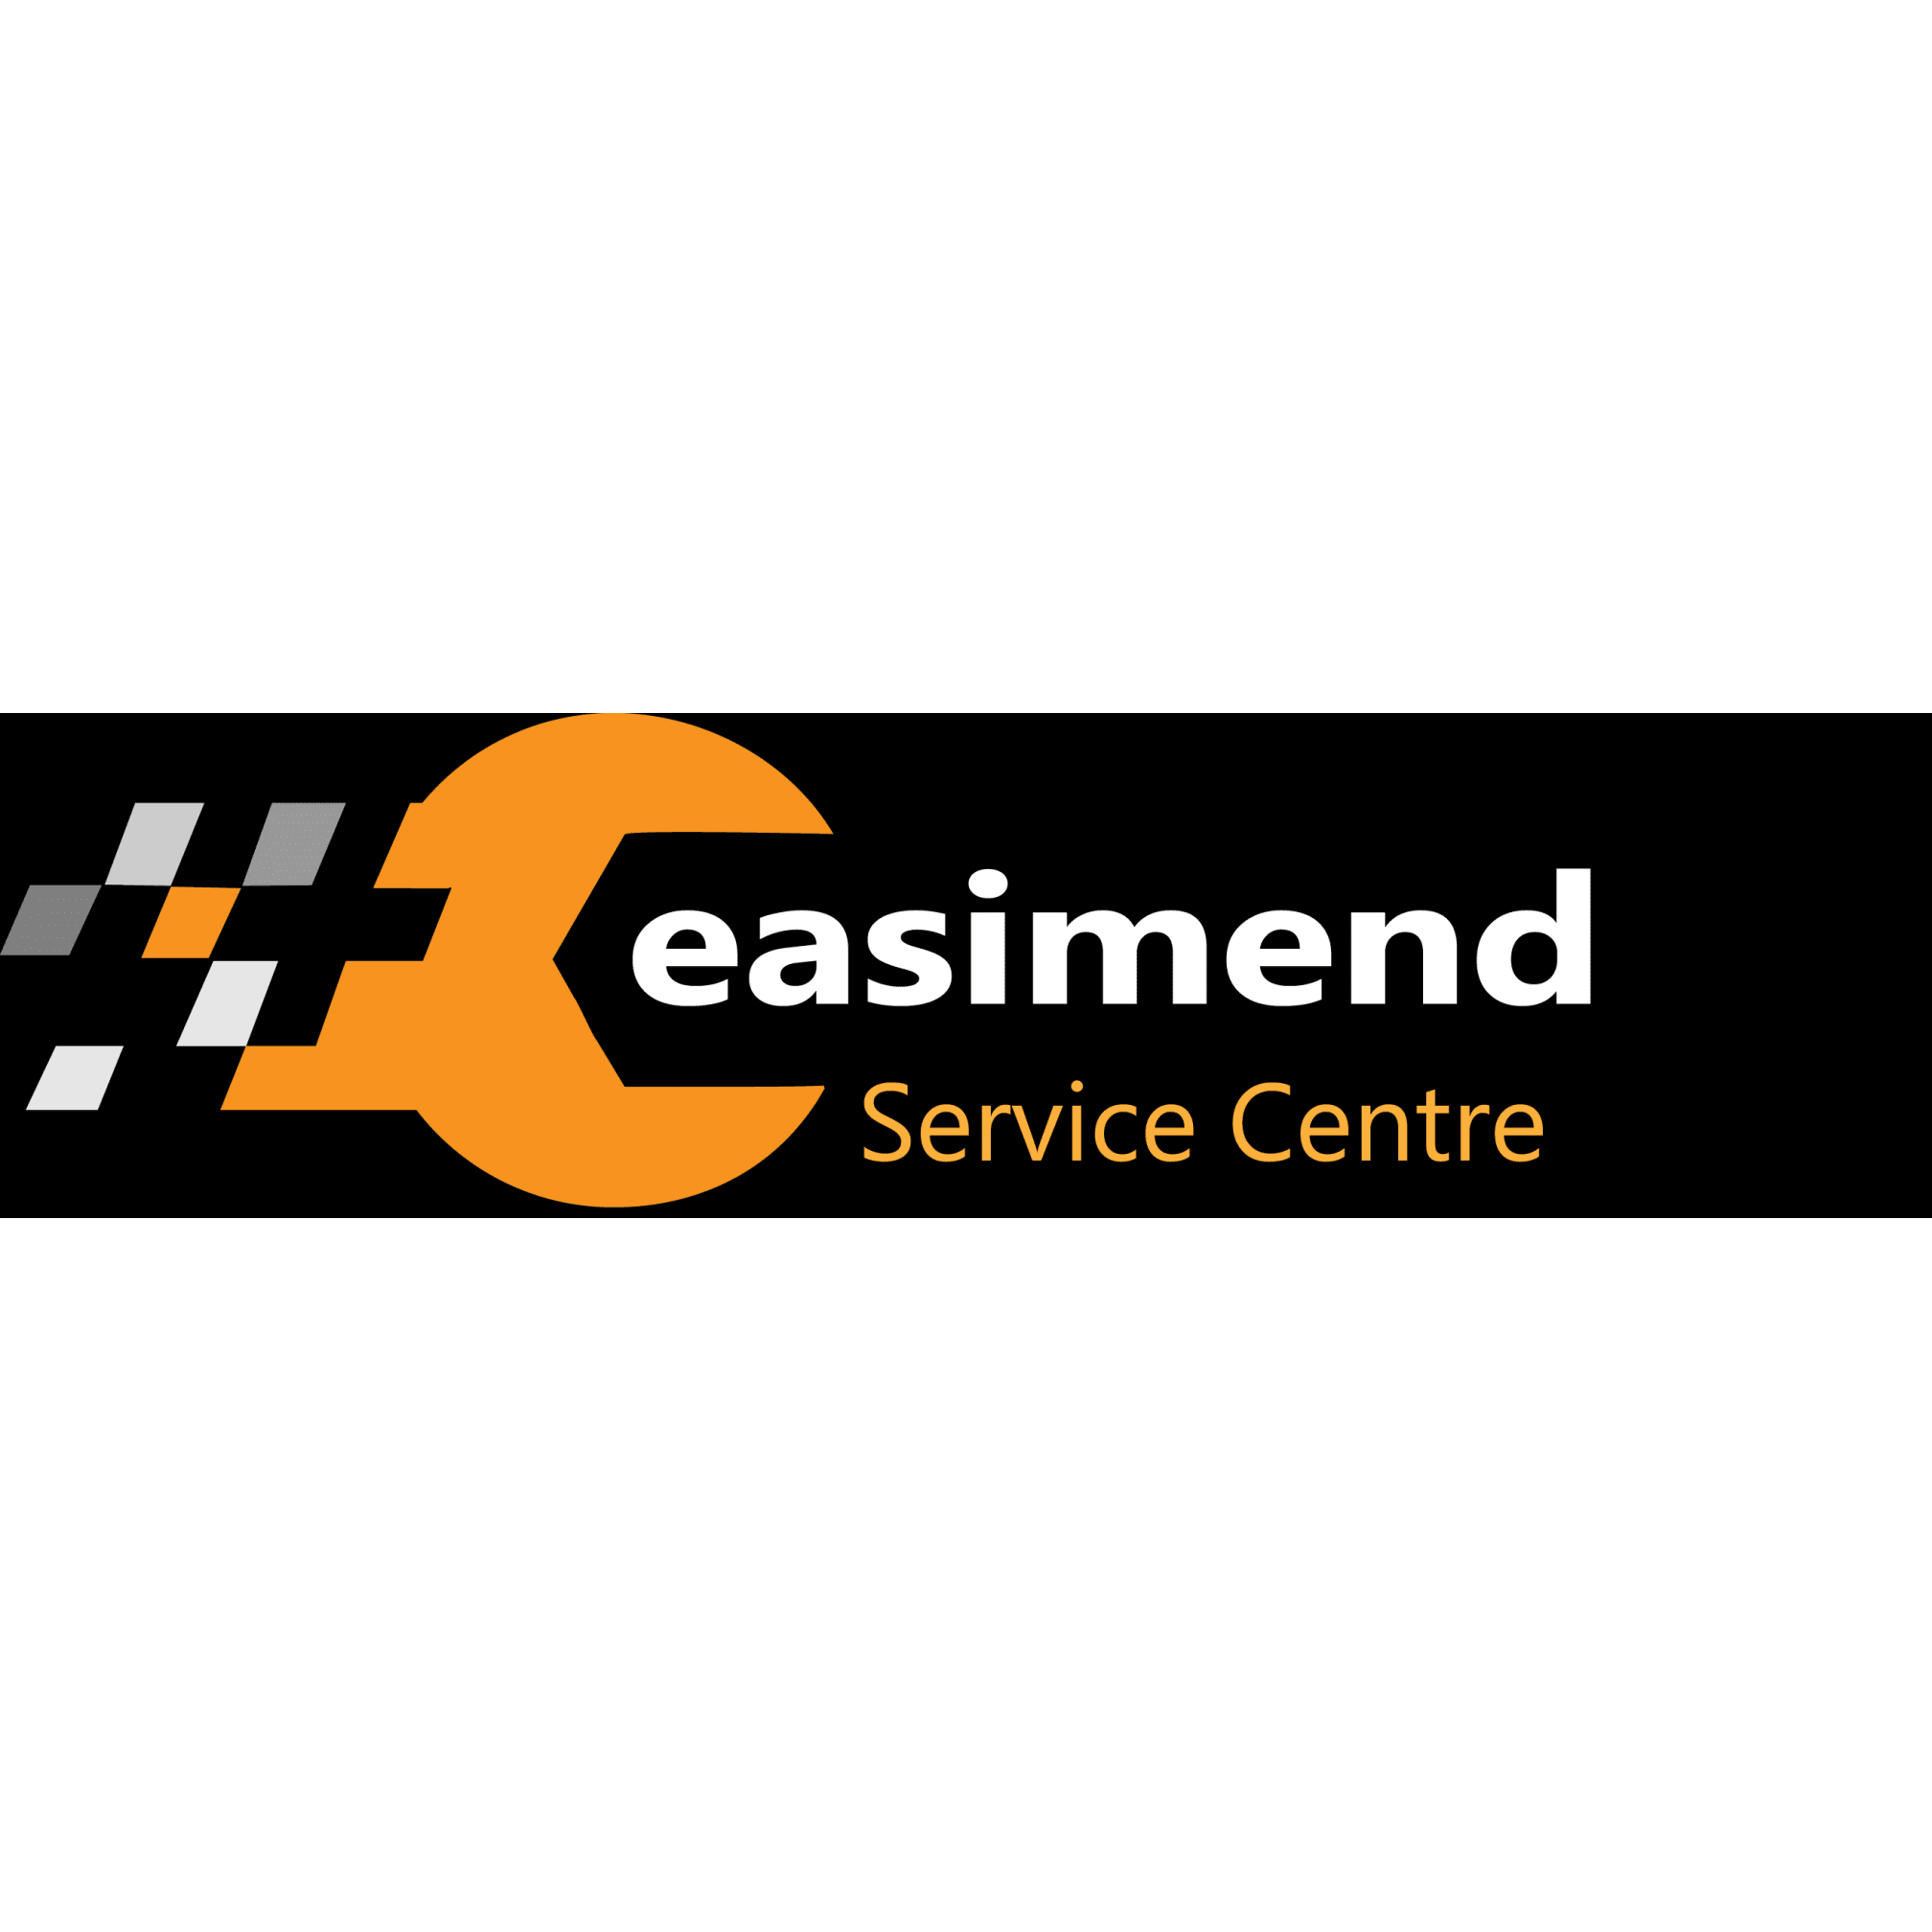 Easimend Service Centre Ltd - Dukinfield, Lancashire SK16 4RA - 07514 765517 | ShowMeLocal.com